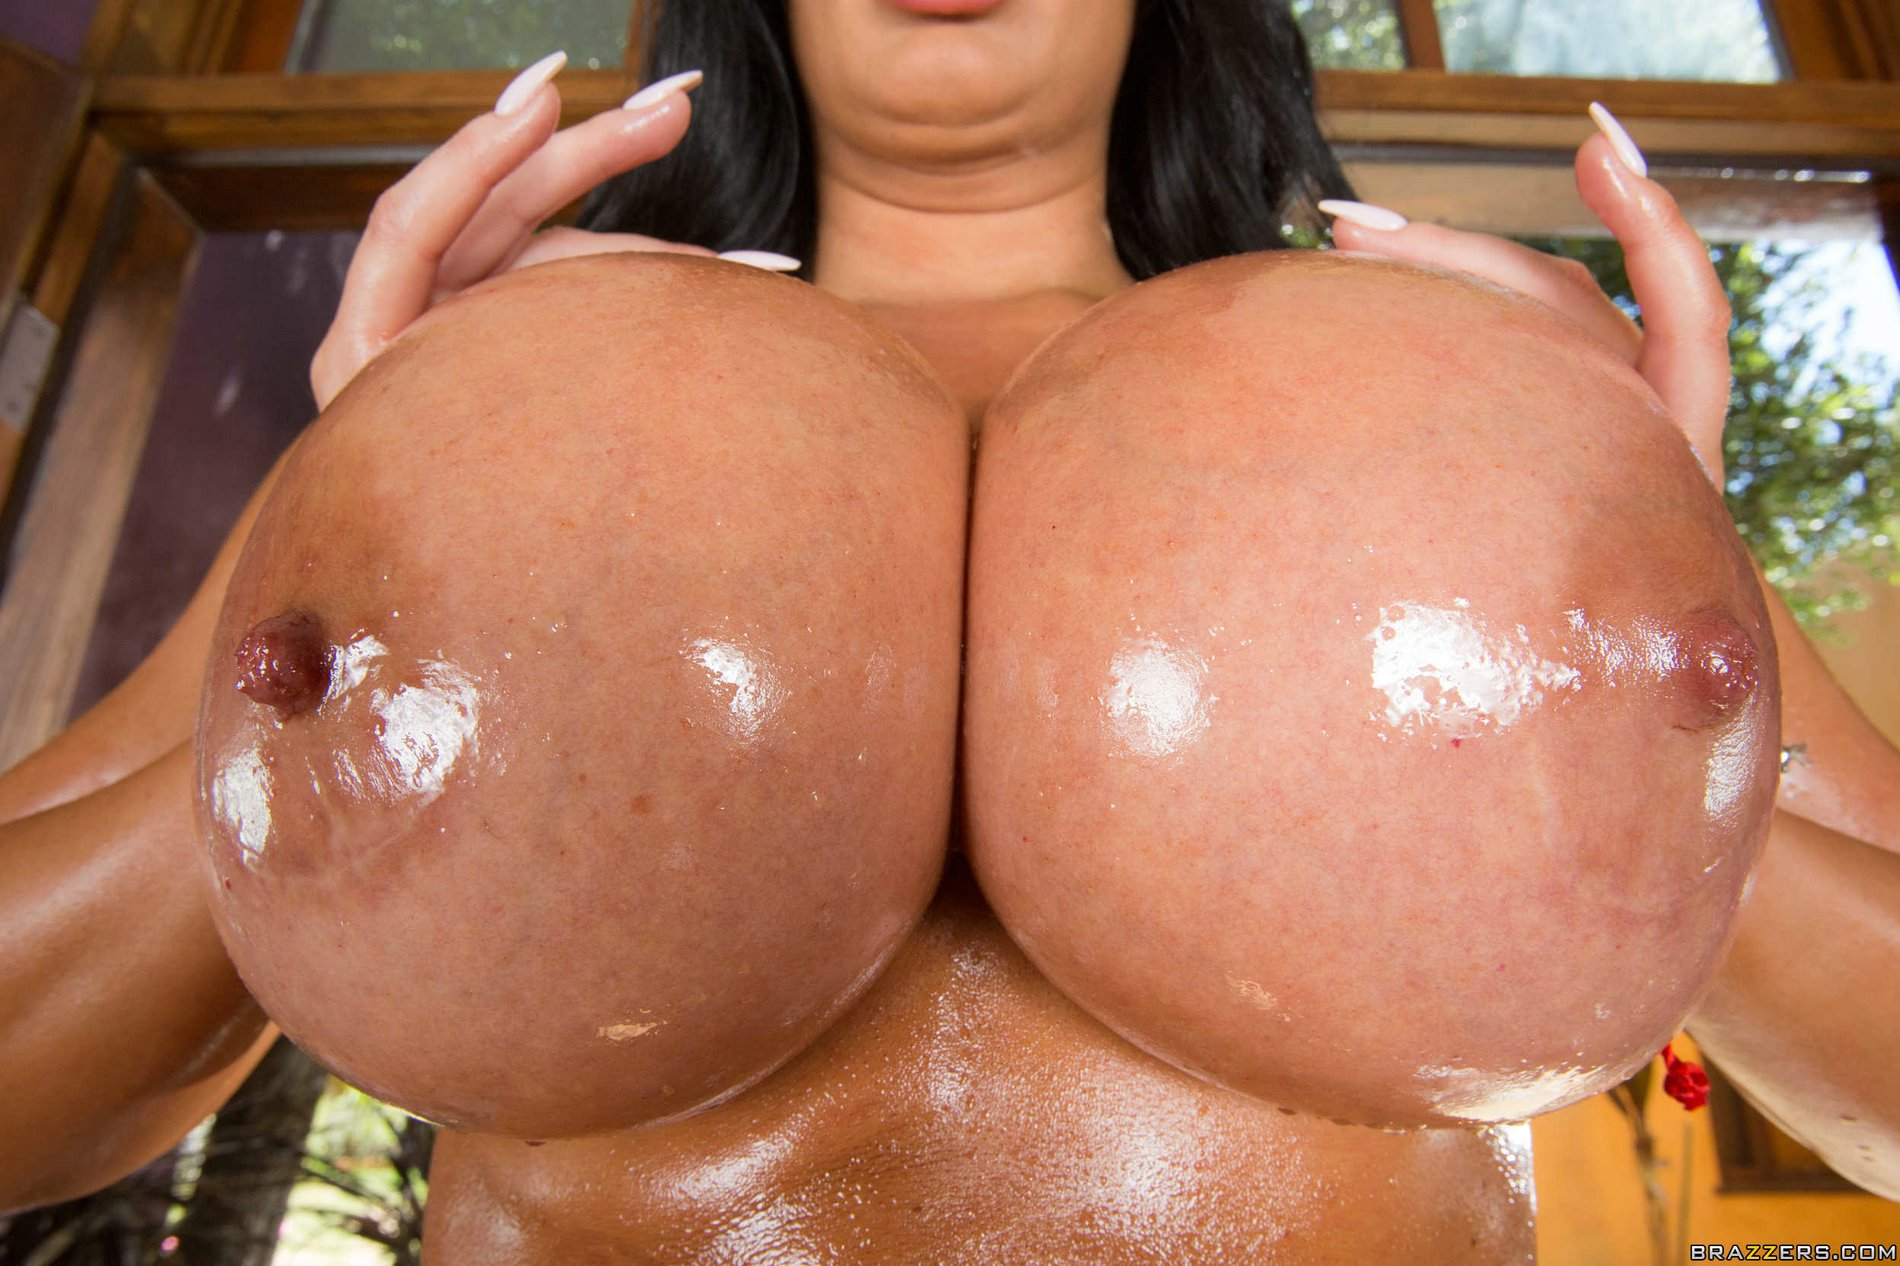 Huge oiled boobs and ass porn consider, that